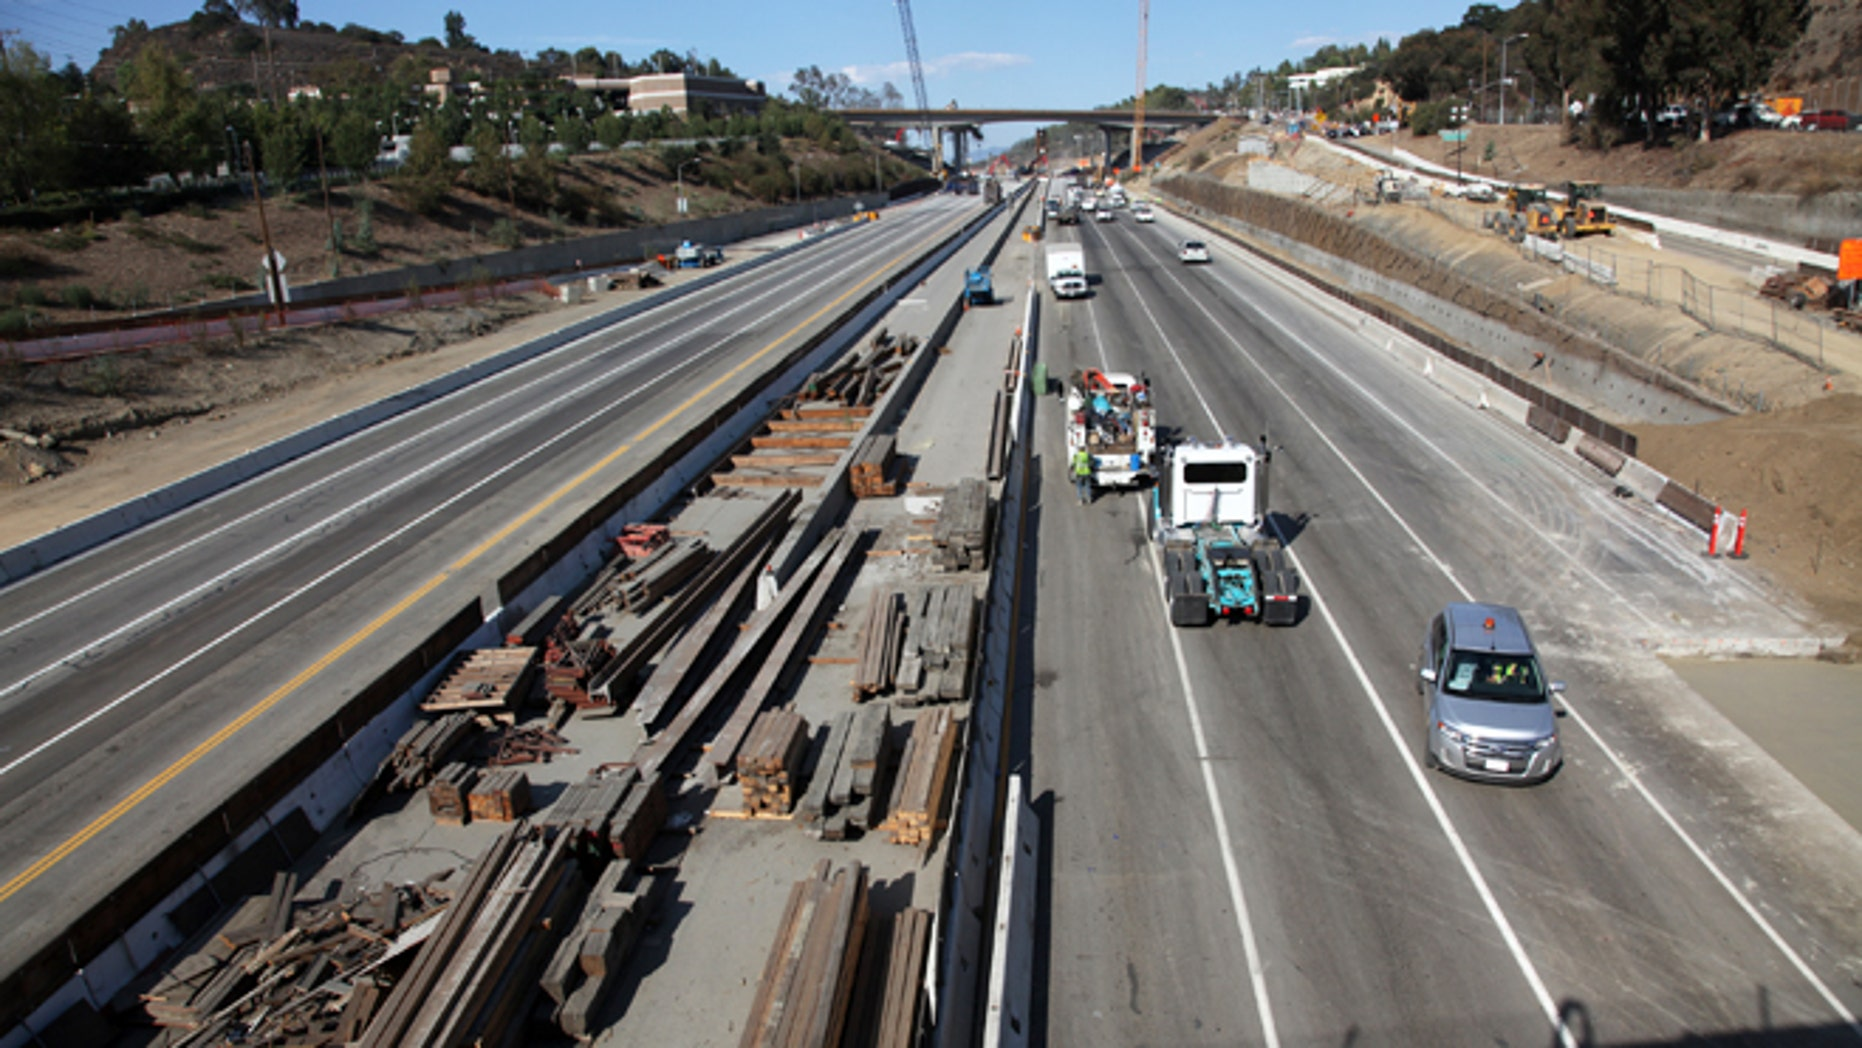 Sept. 29,2012: Workers continue the demolition of the center span of the Mulholland Drive bridge along a closed Interstate 405 in Los Angeles. Construction crews are on schedule and traffic tie-ups are minimal in Los Angeles, making for a smooth start to Carmageddon II, the sequel to last year's shutdown of one of the nation's busiest freeways.